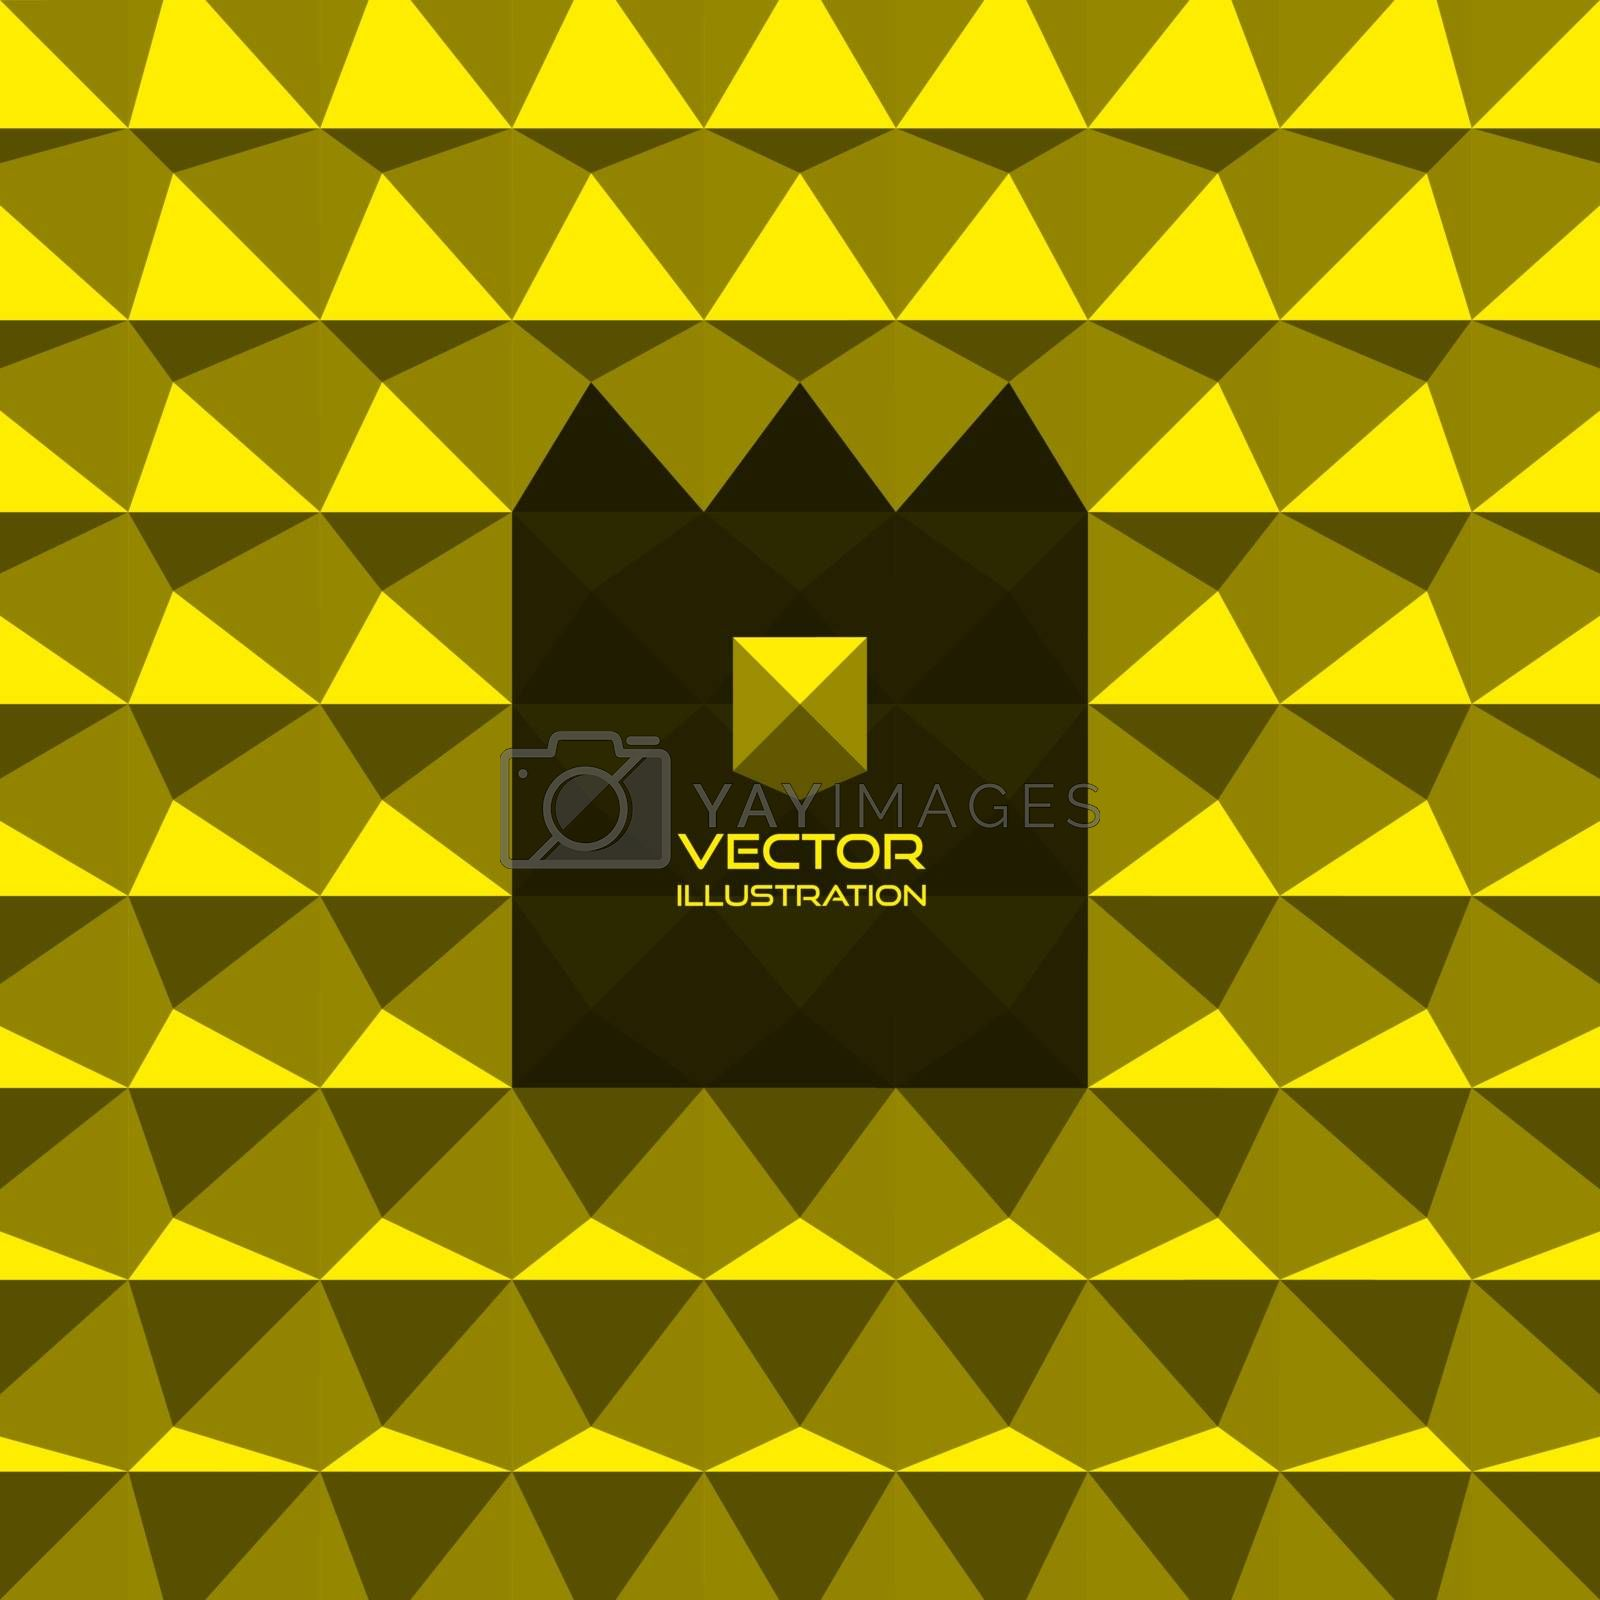 Abstract 3d geometric background. 3D vector interior wall panel pattern.  With place for text. Can be used for wallpaper, web banner or design element.